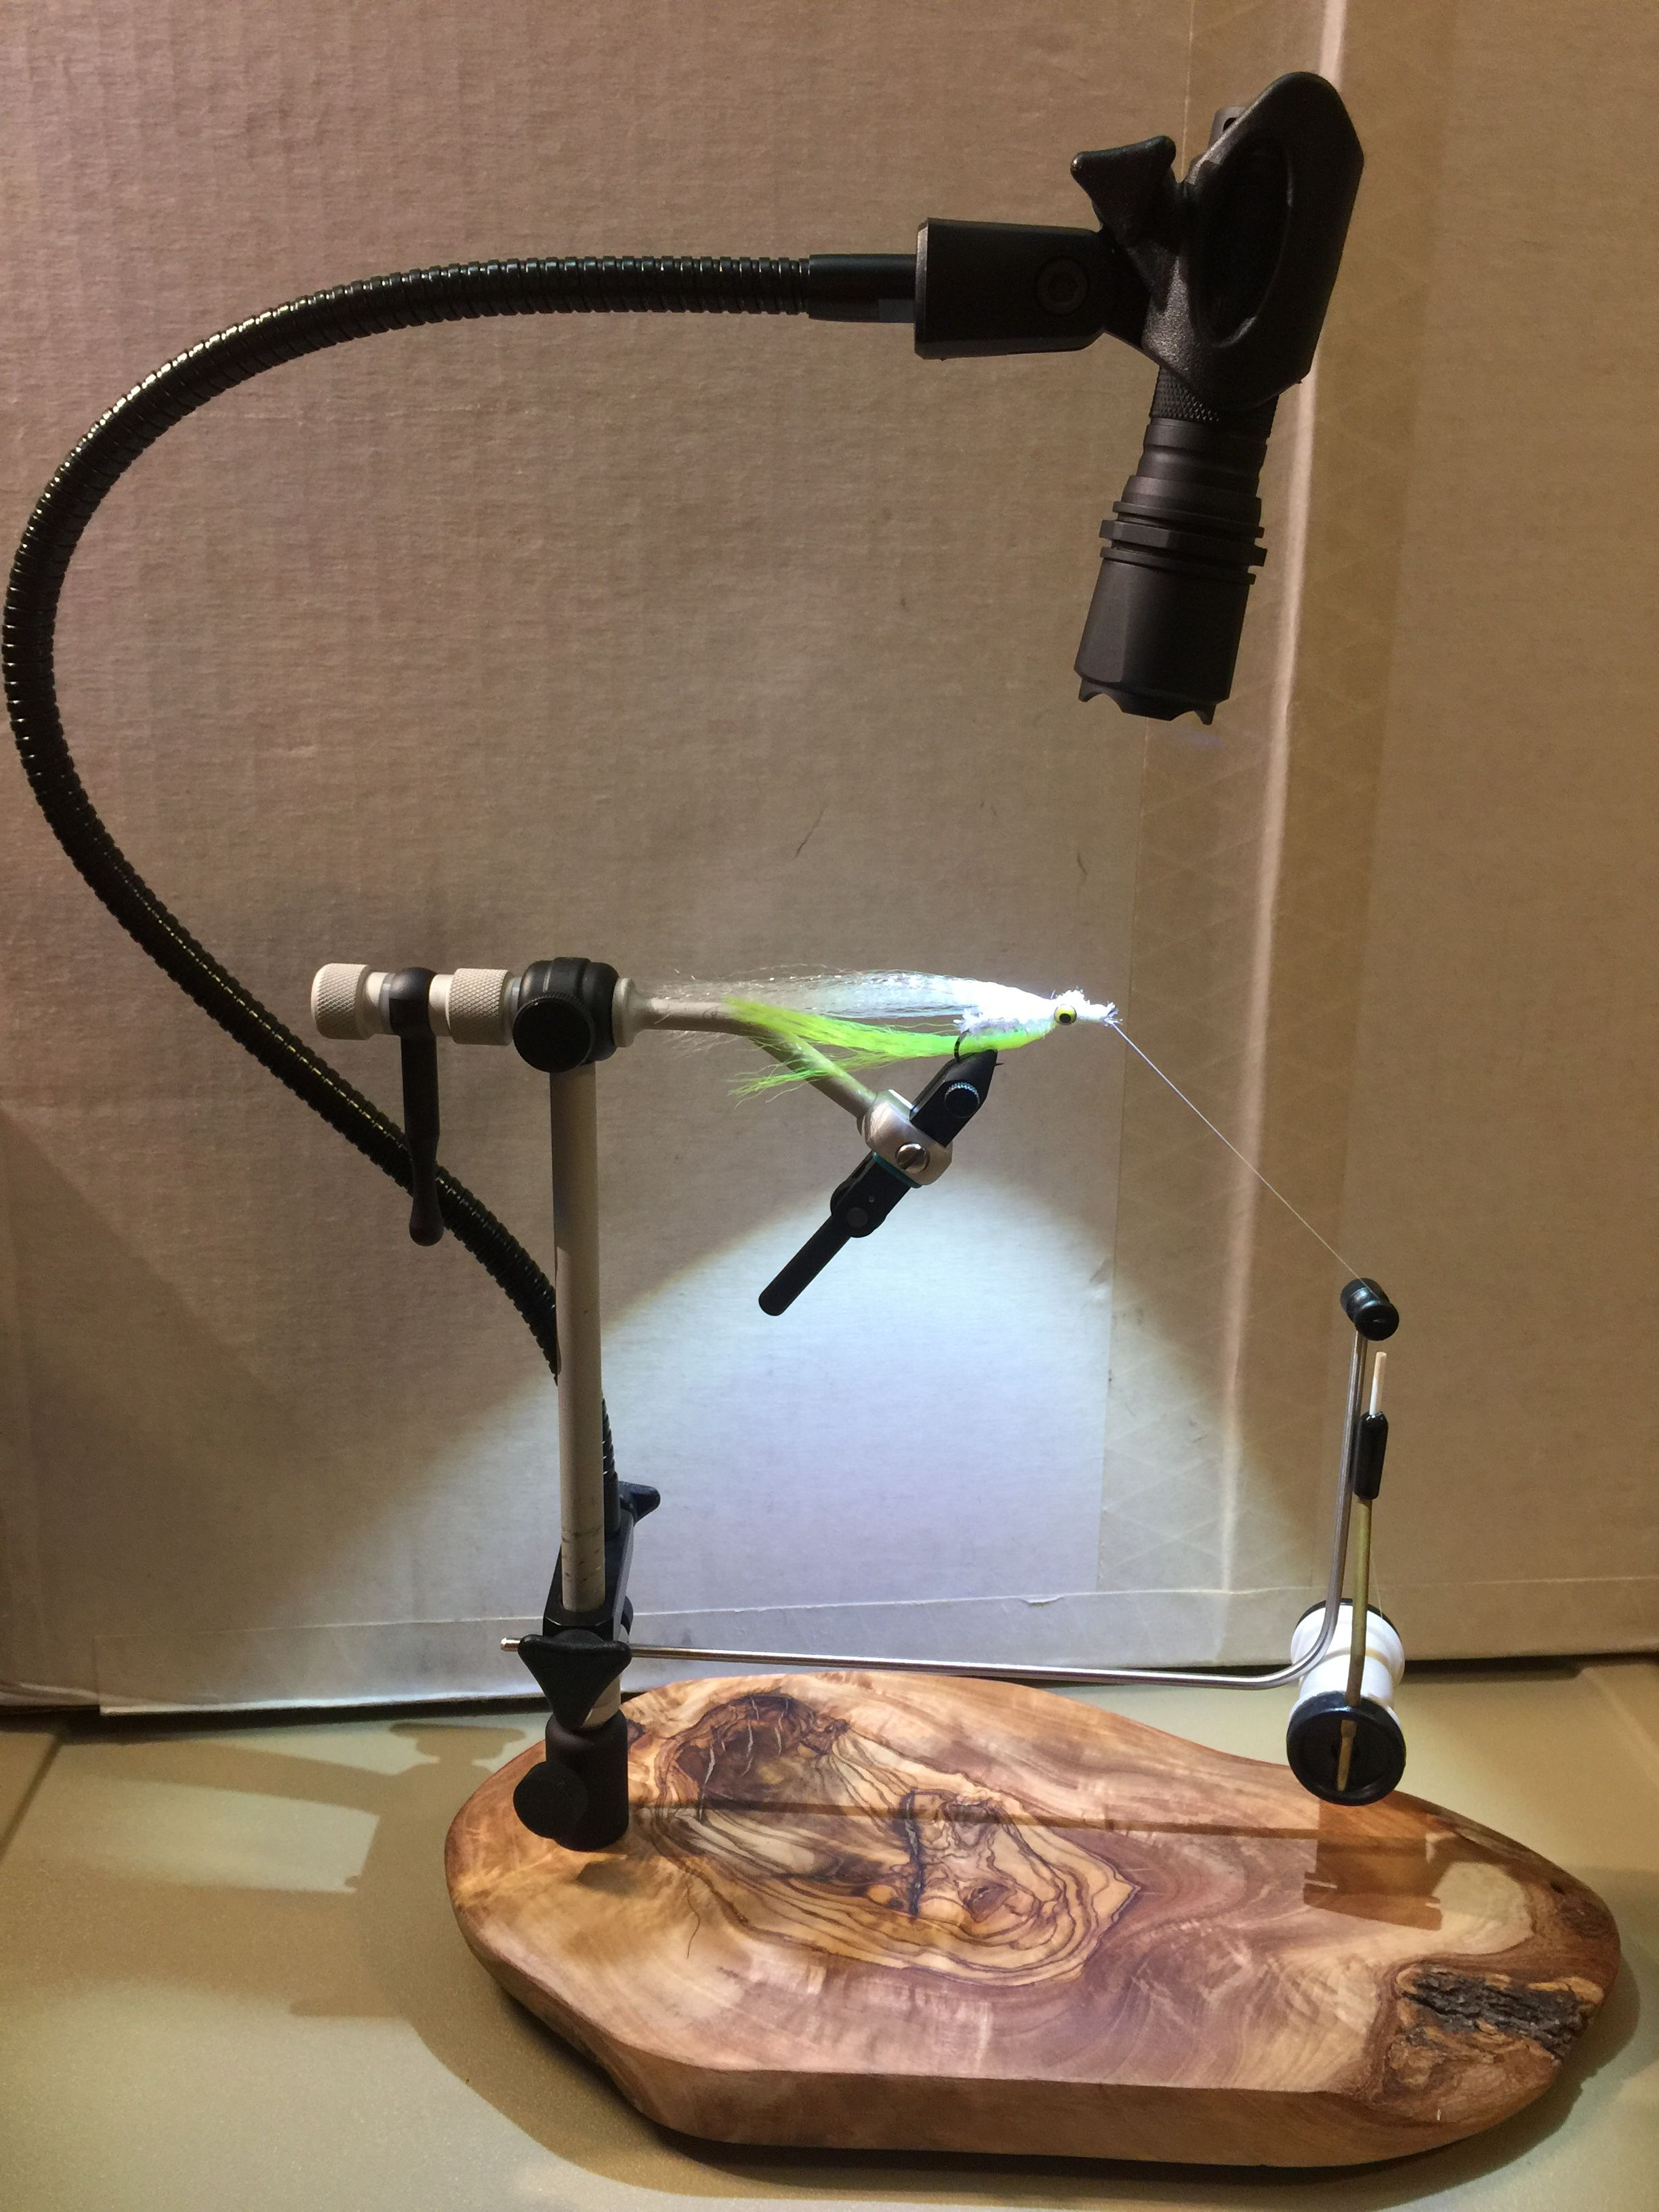 280 Lumen Led Portable Light Added To Renzetti Vise With